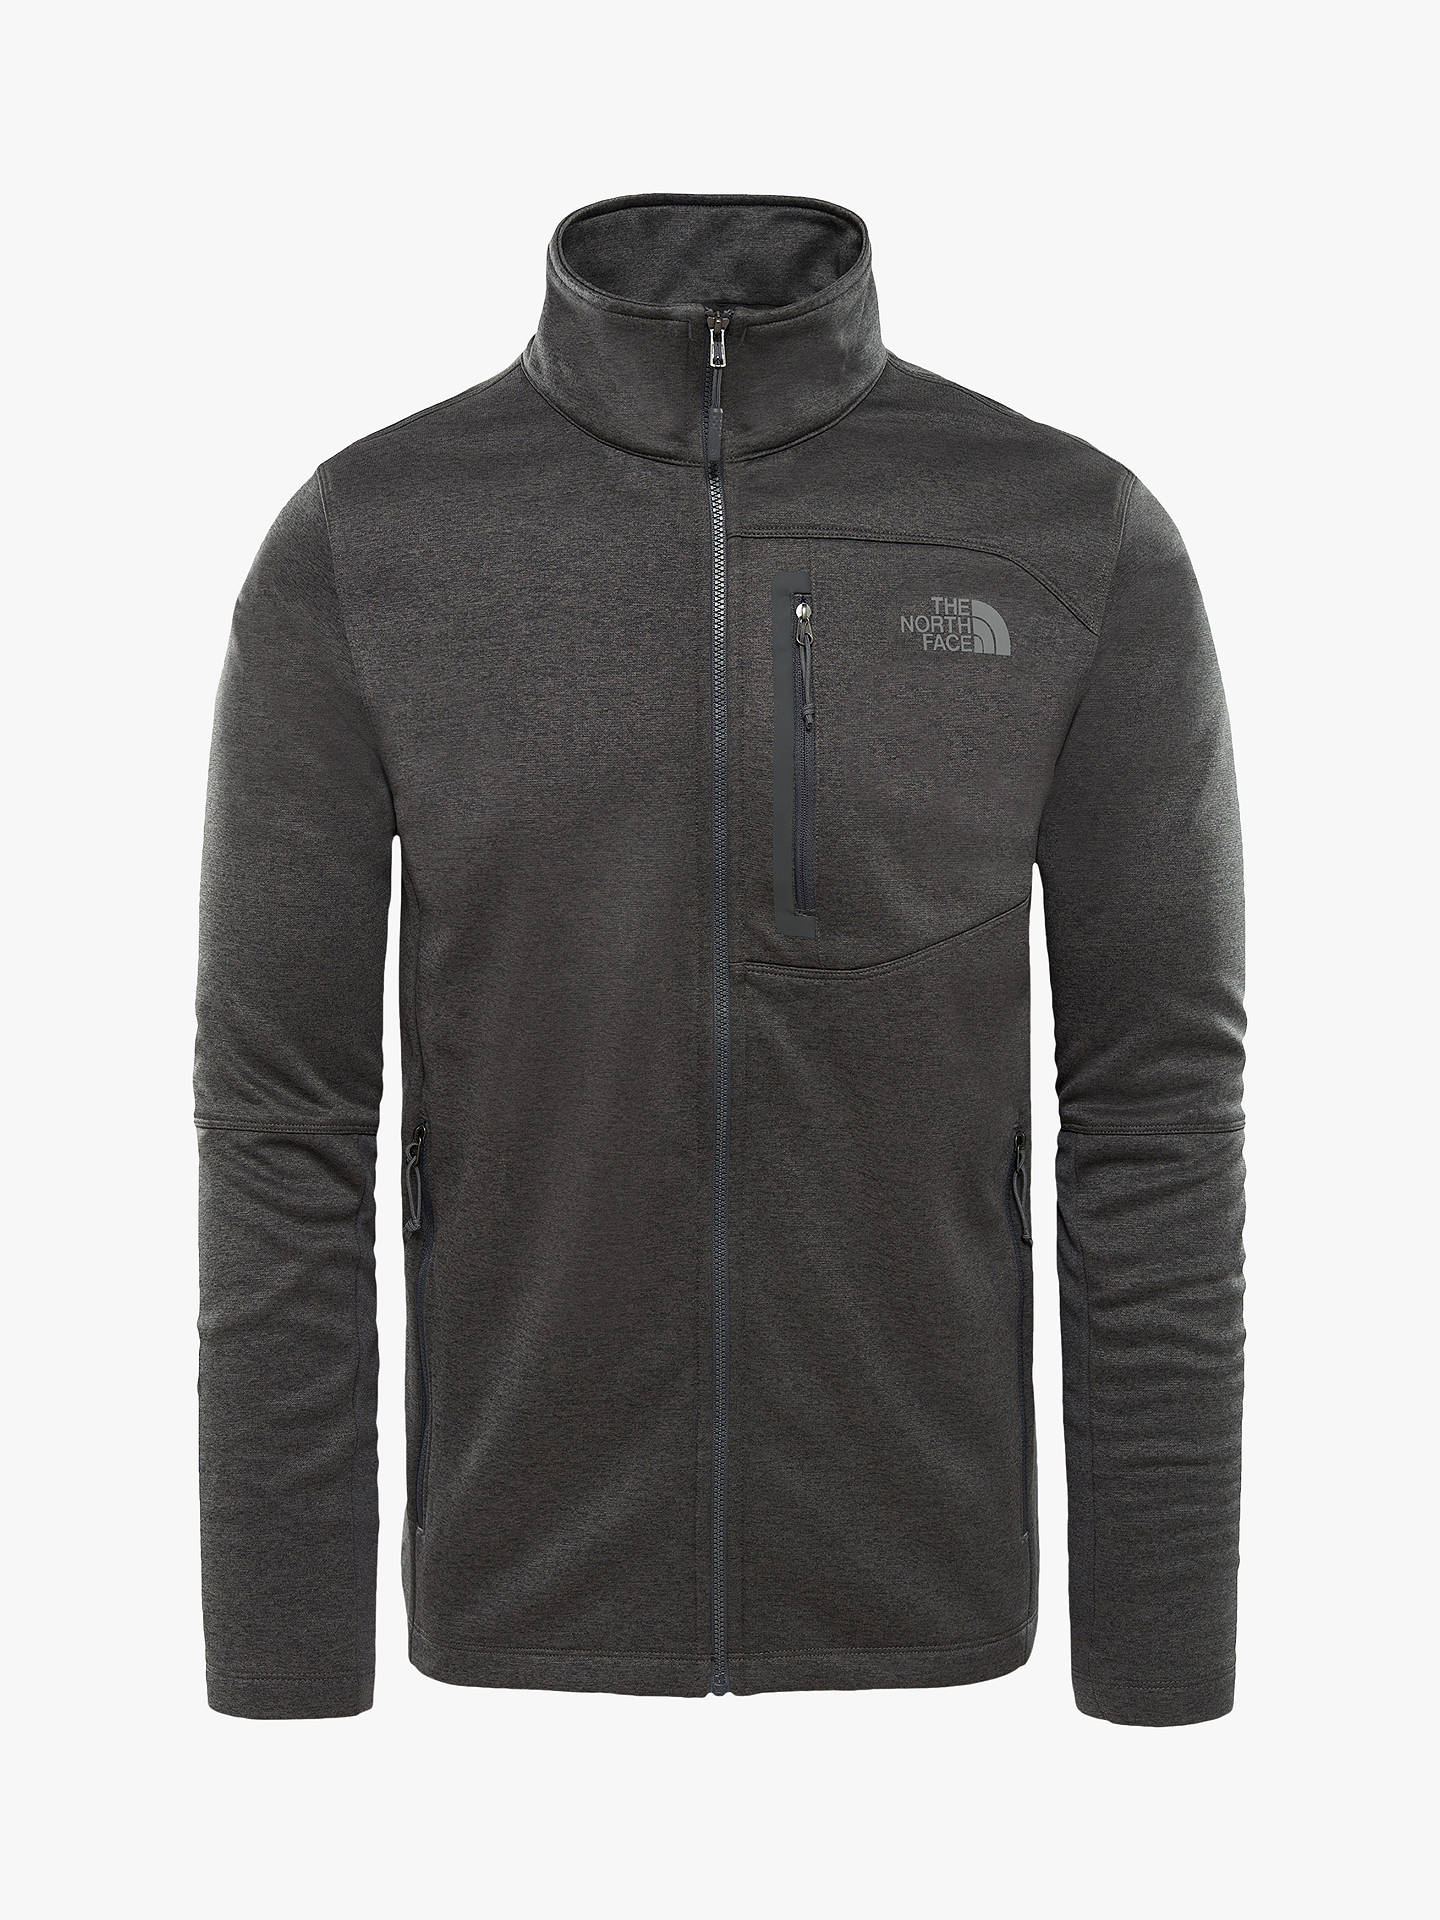 4908fcca3977 Buy The North Face Canyonlands Men s Zip Jacket